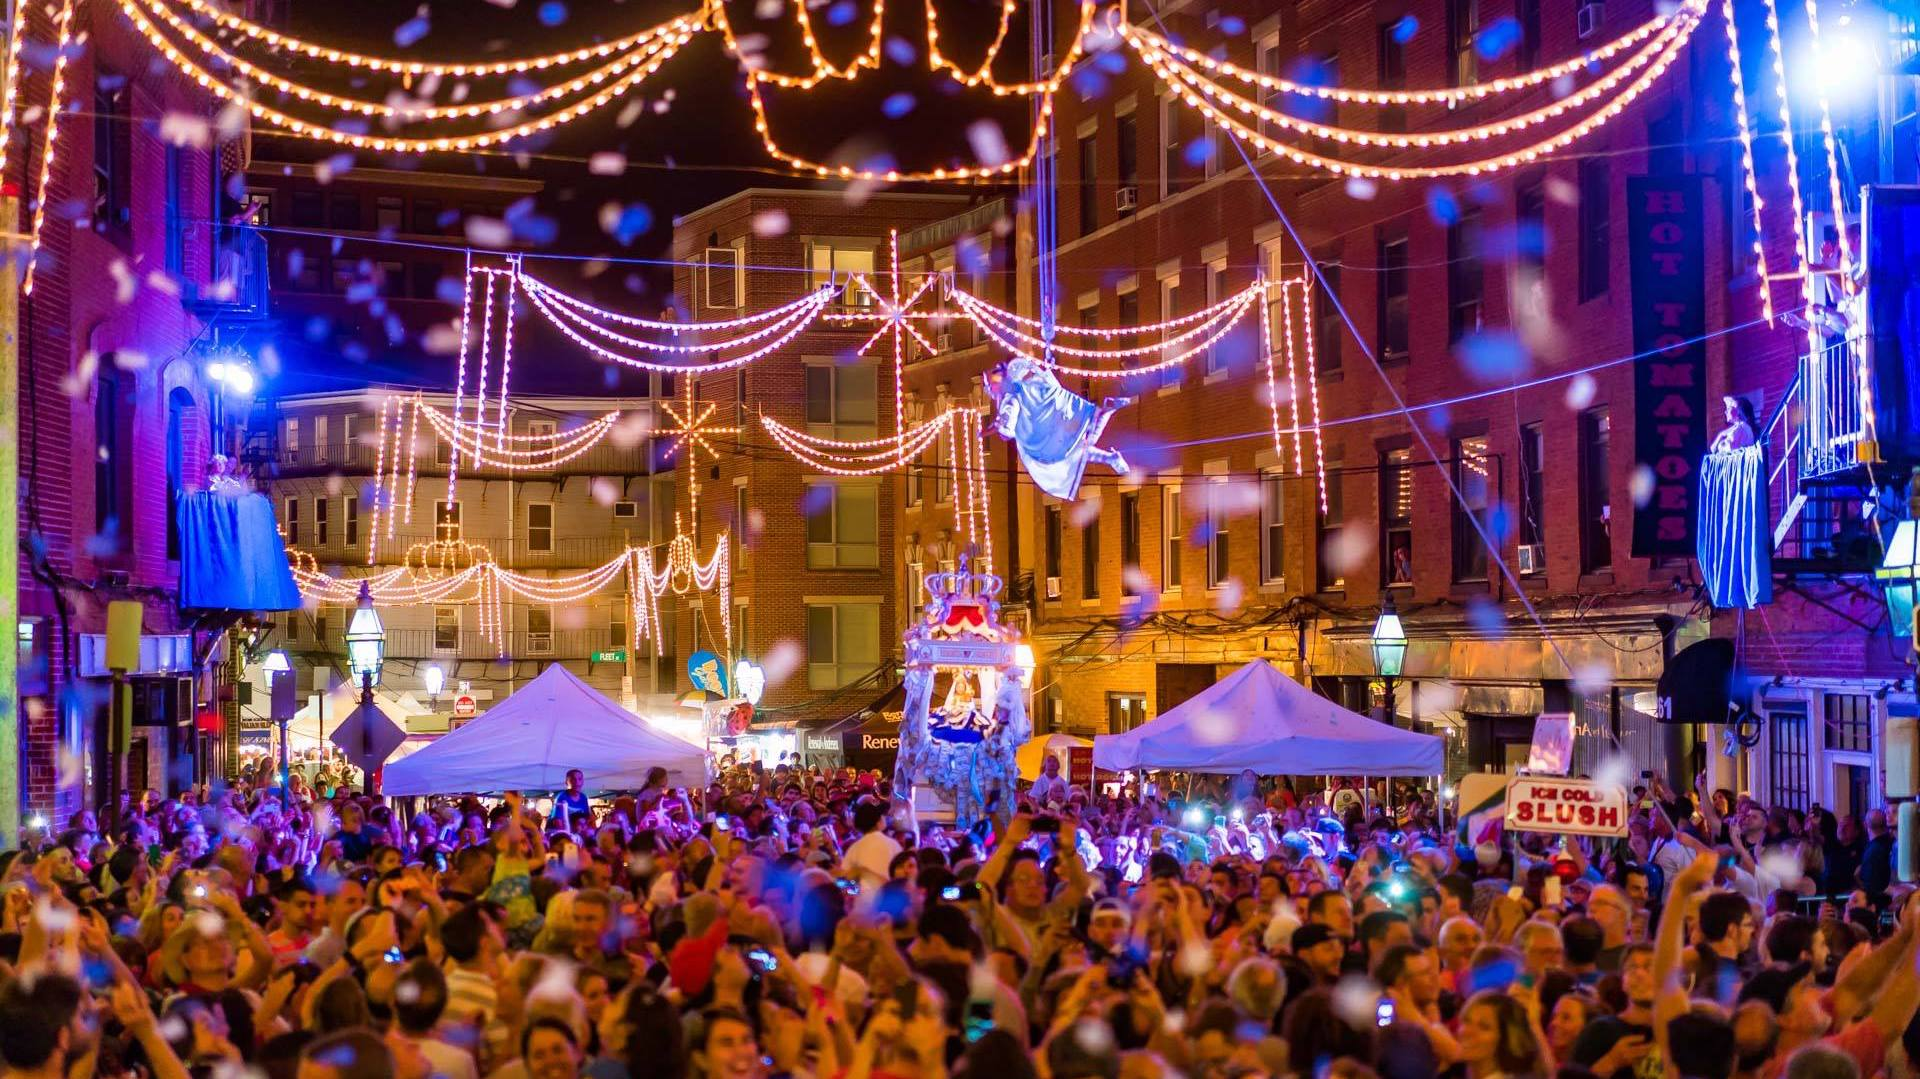 6 Fun Things To Do In Boston This Weekend: August 13-15